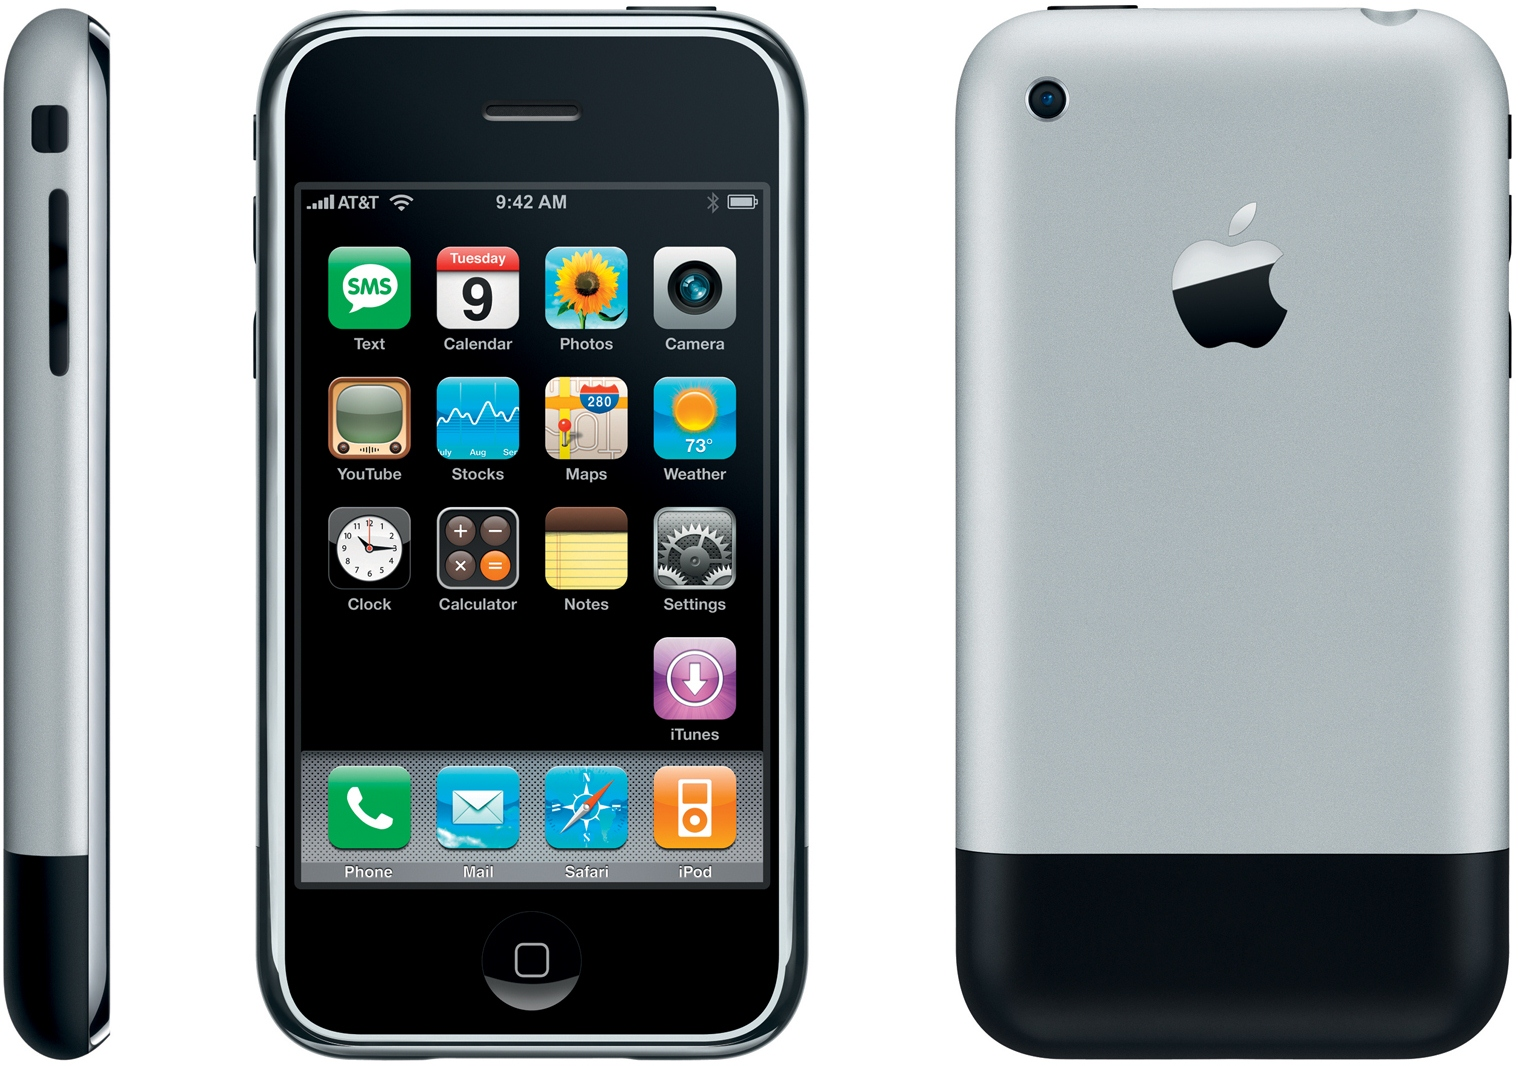 The tale of two Androids: Before and after the iPhone